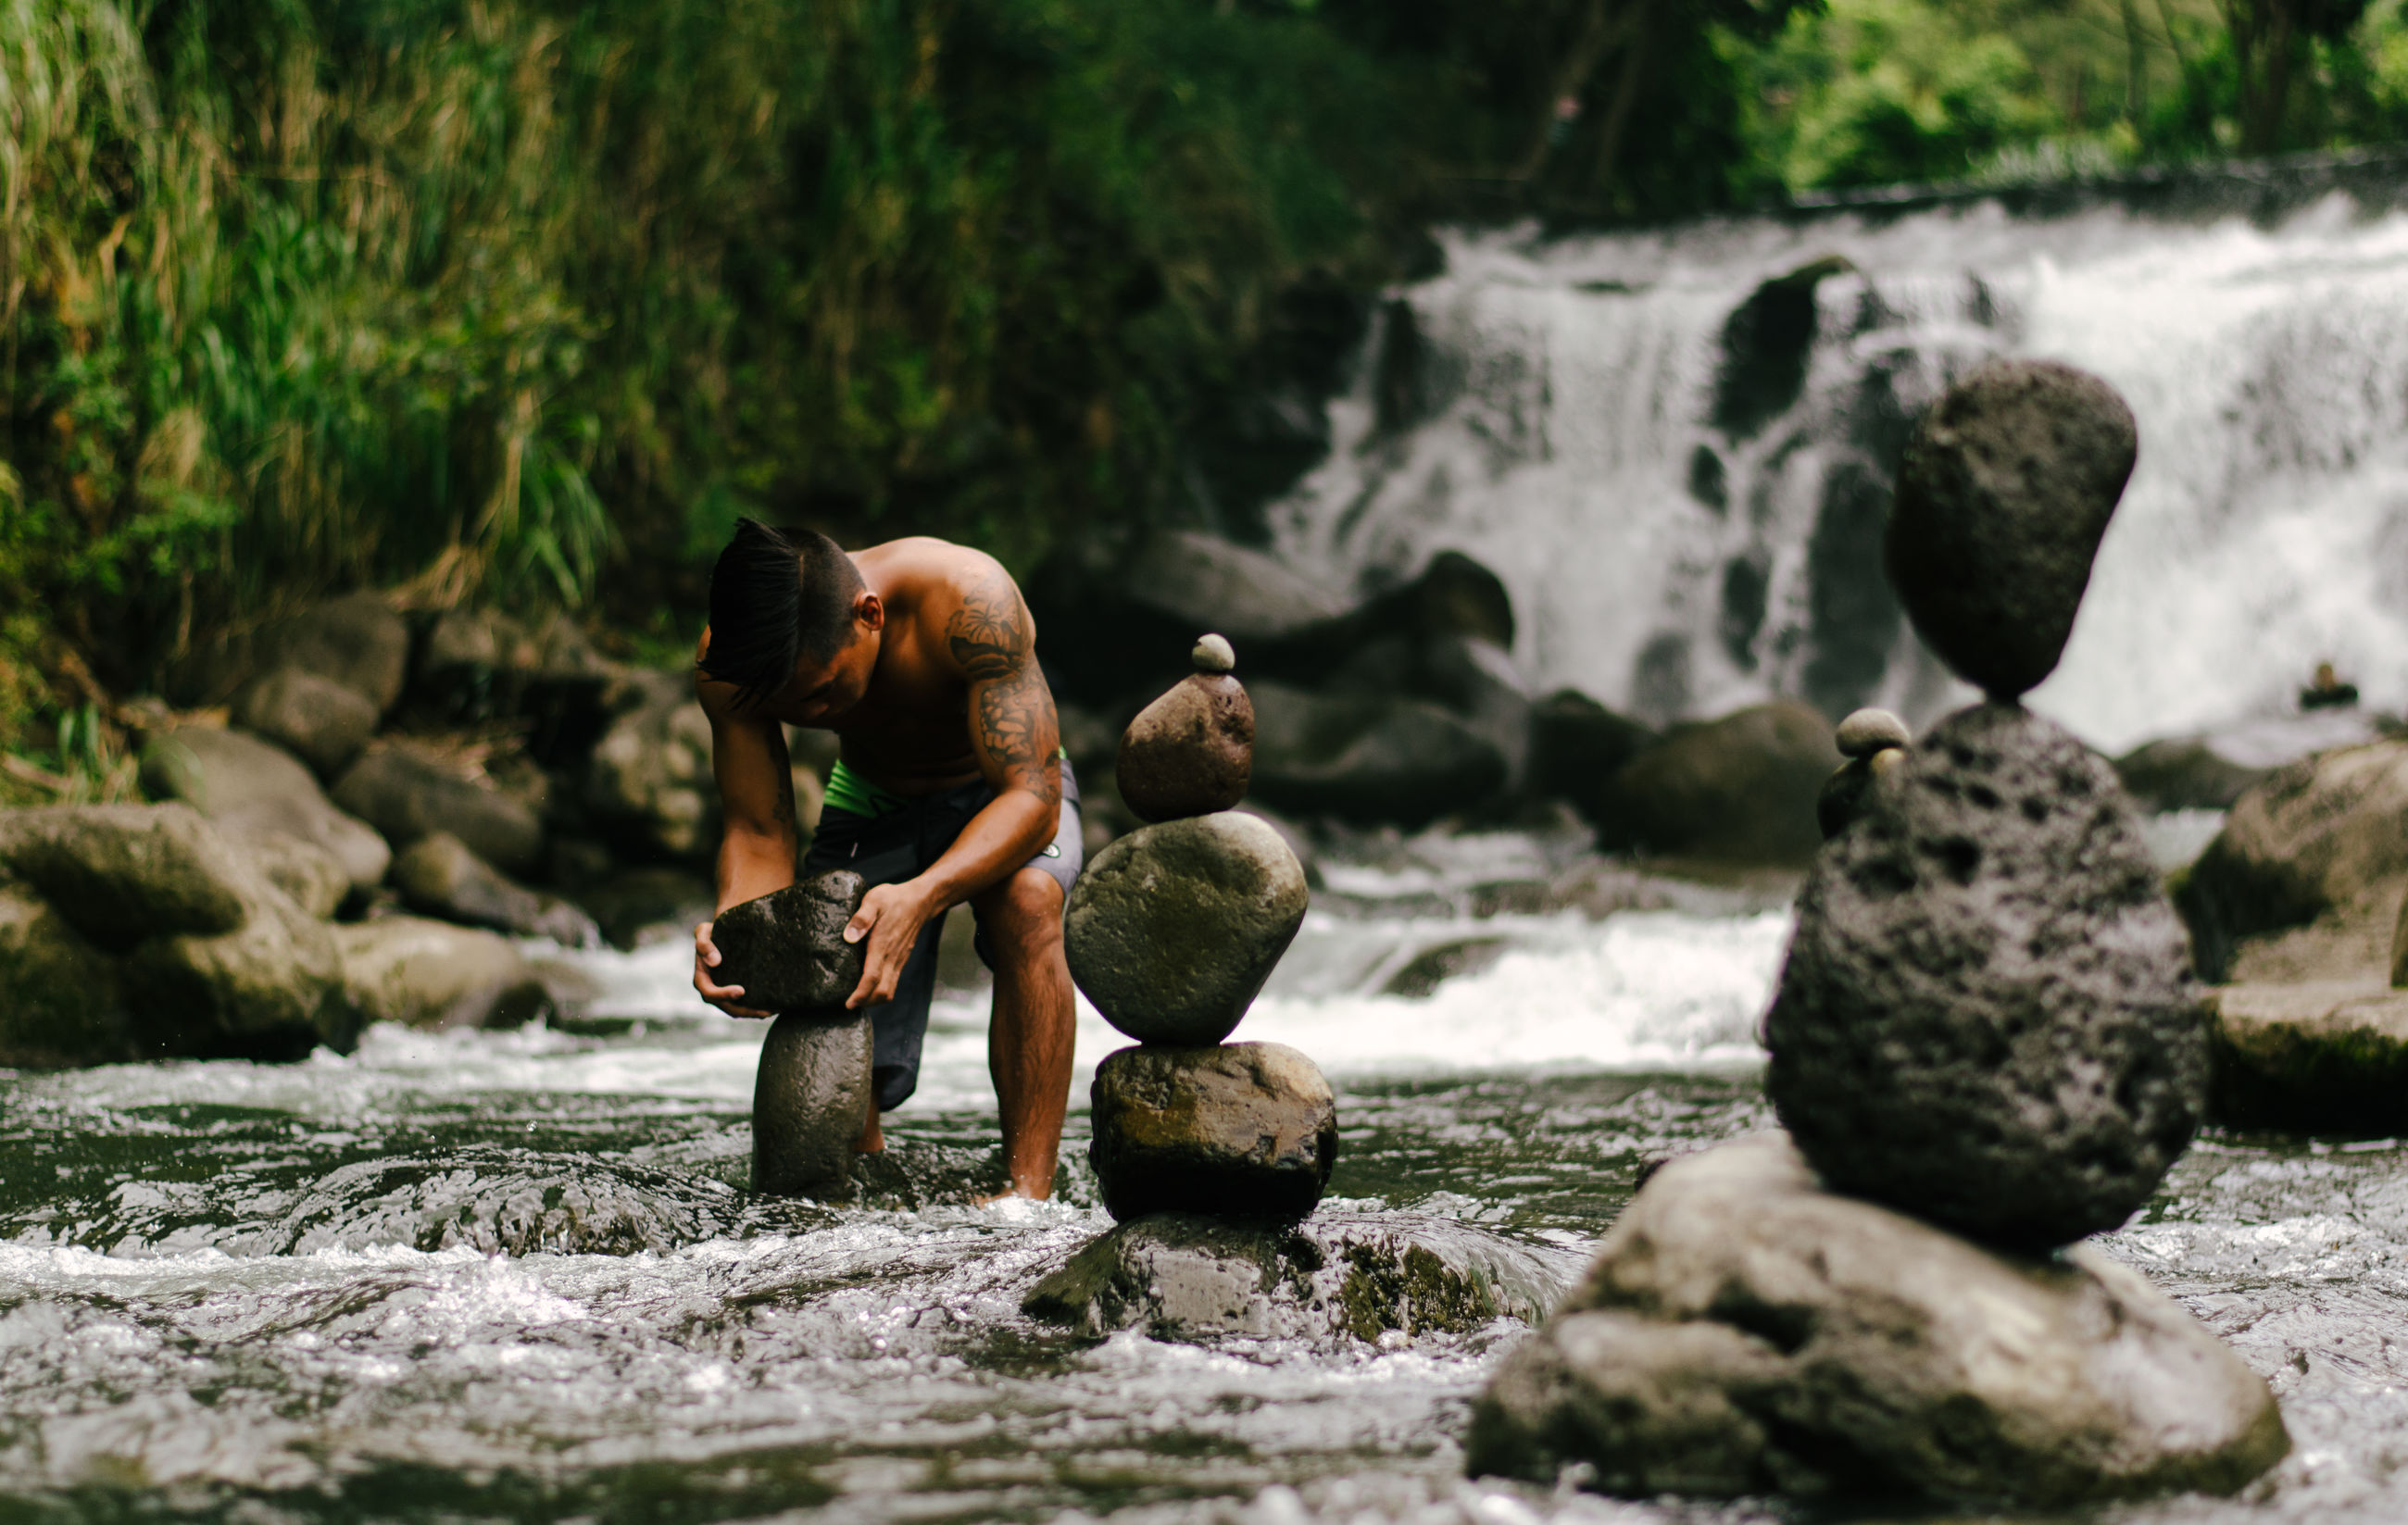 rock - object, leisure activity, lifestyles, water, men, full length, rear view, person, rock, togetherness, stone - object, childhood, casual clothing, focus on foreground, nature, boys, balance